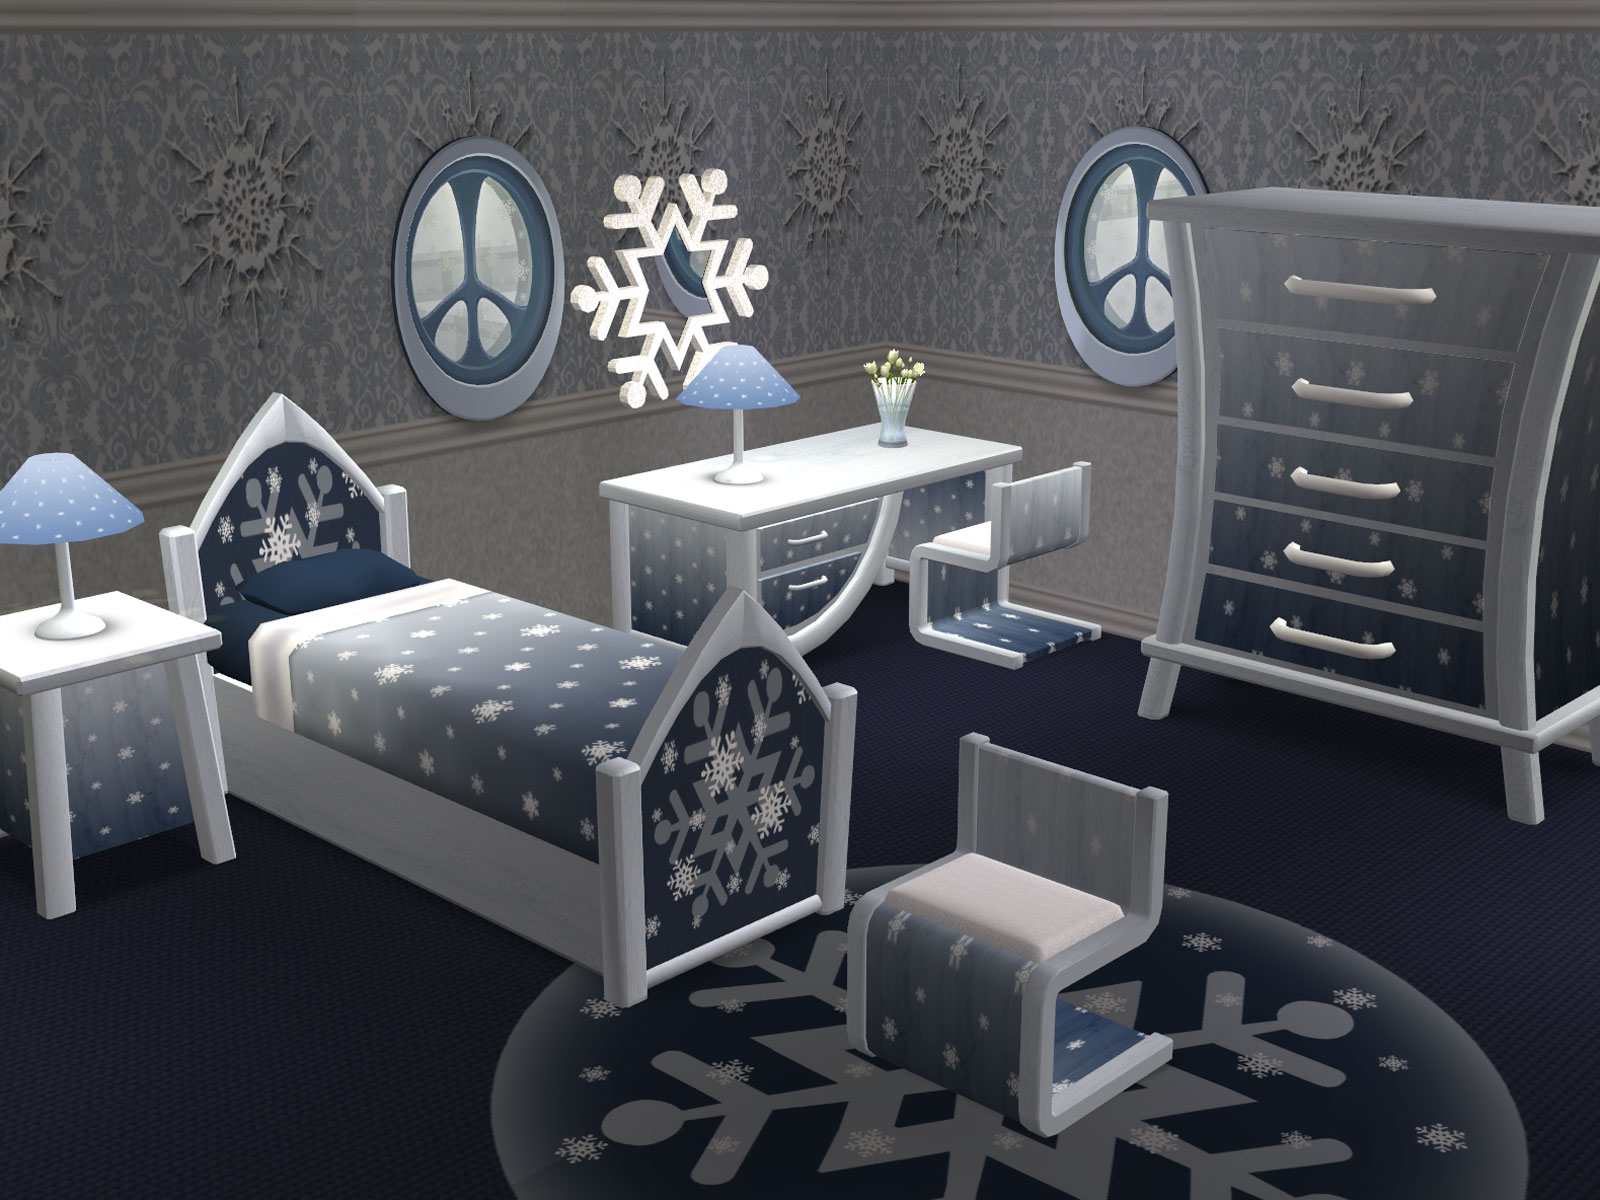 http://www.parsimonious.org/furniture2/files/k8-Winter_Night_Bedroom.jpg